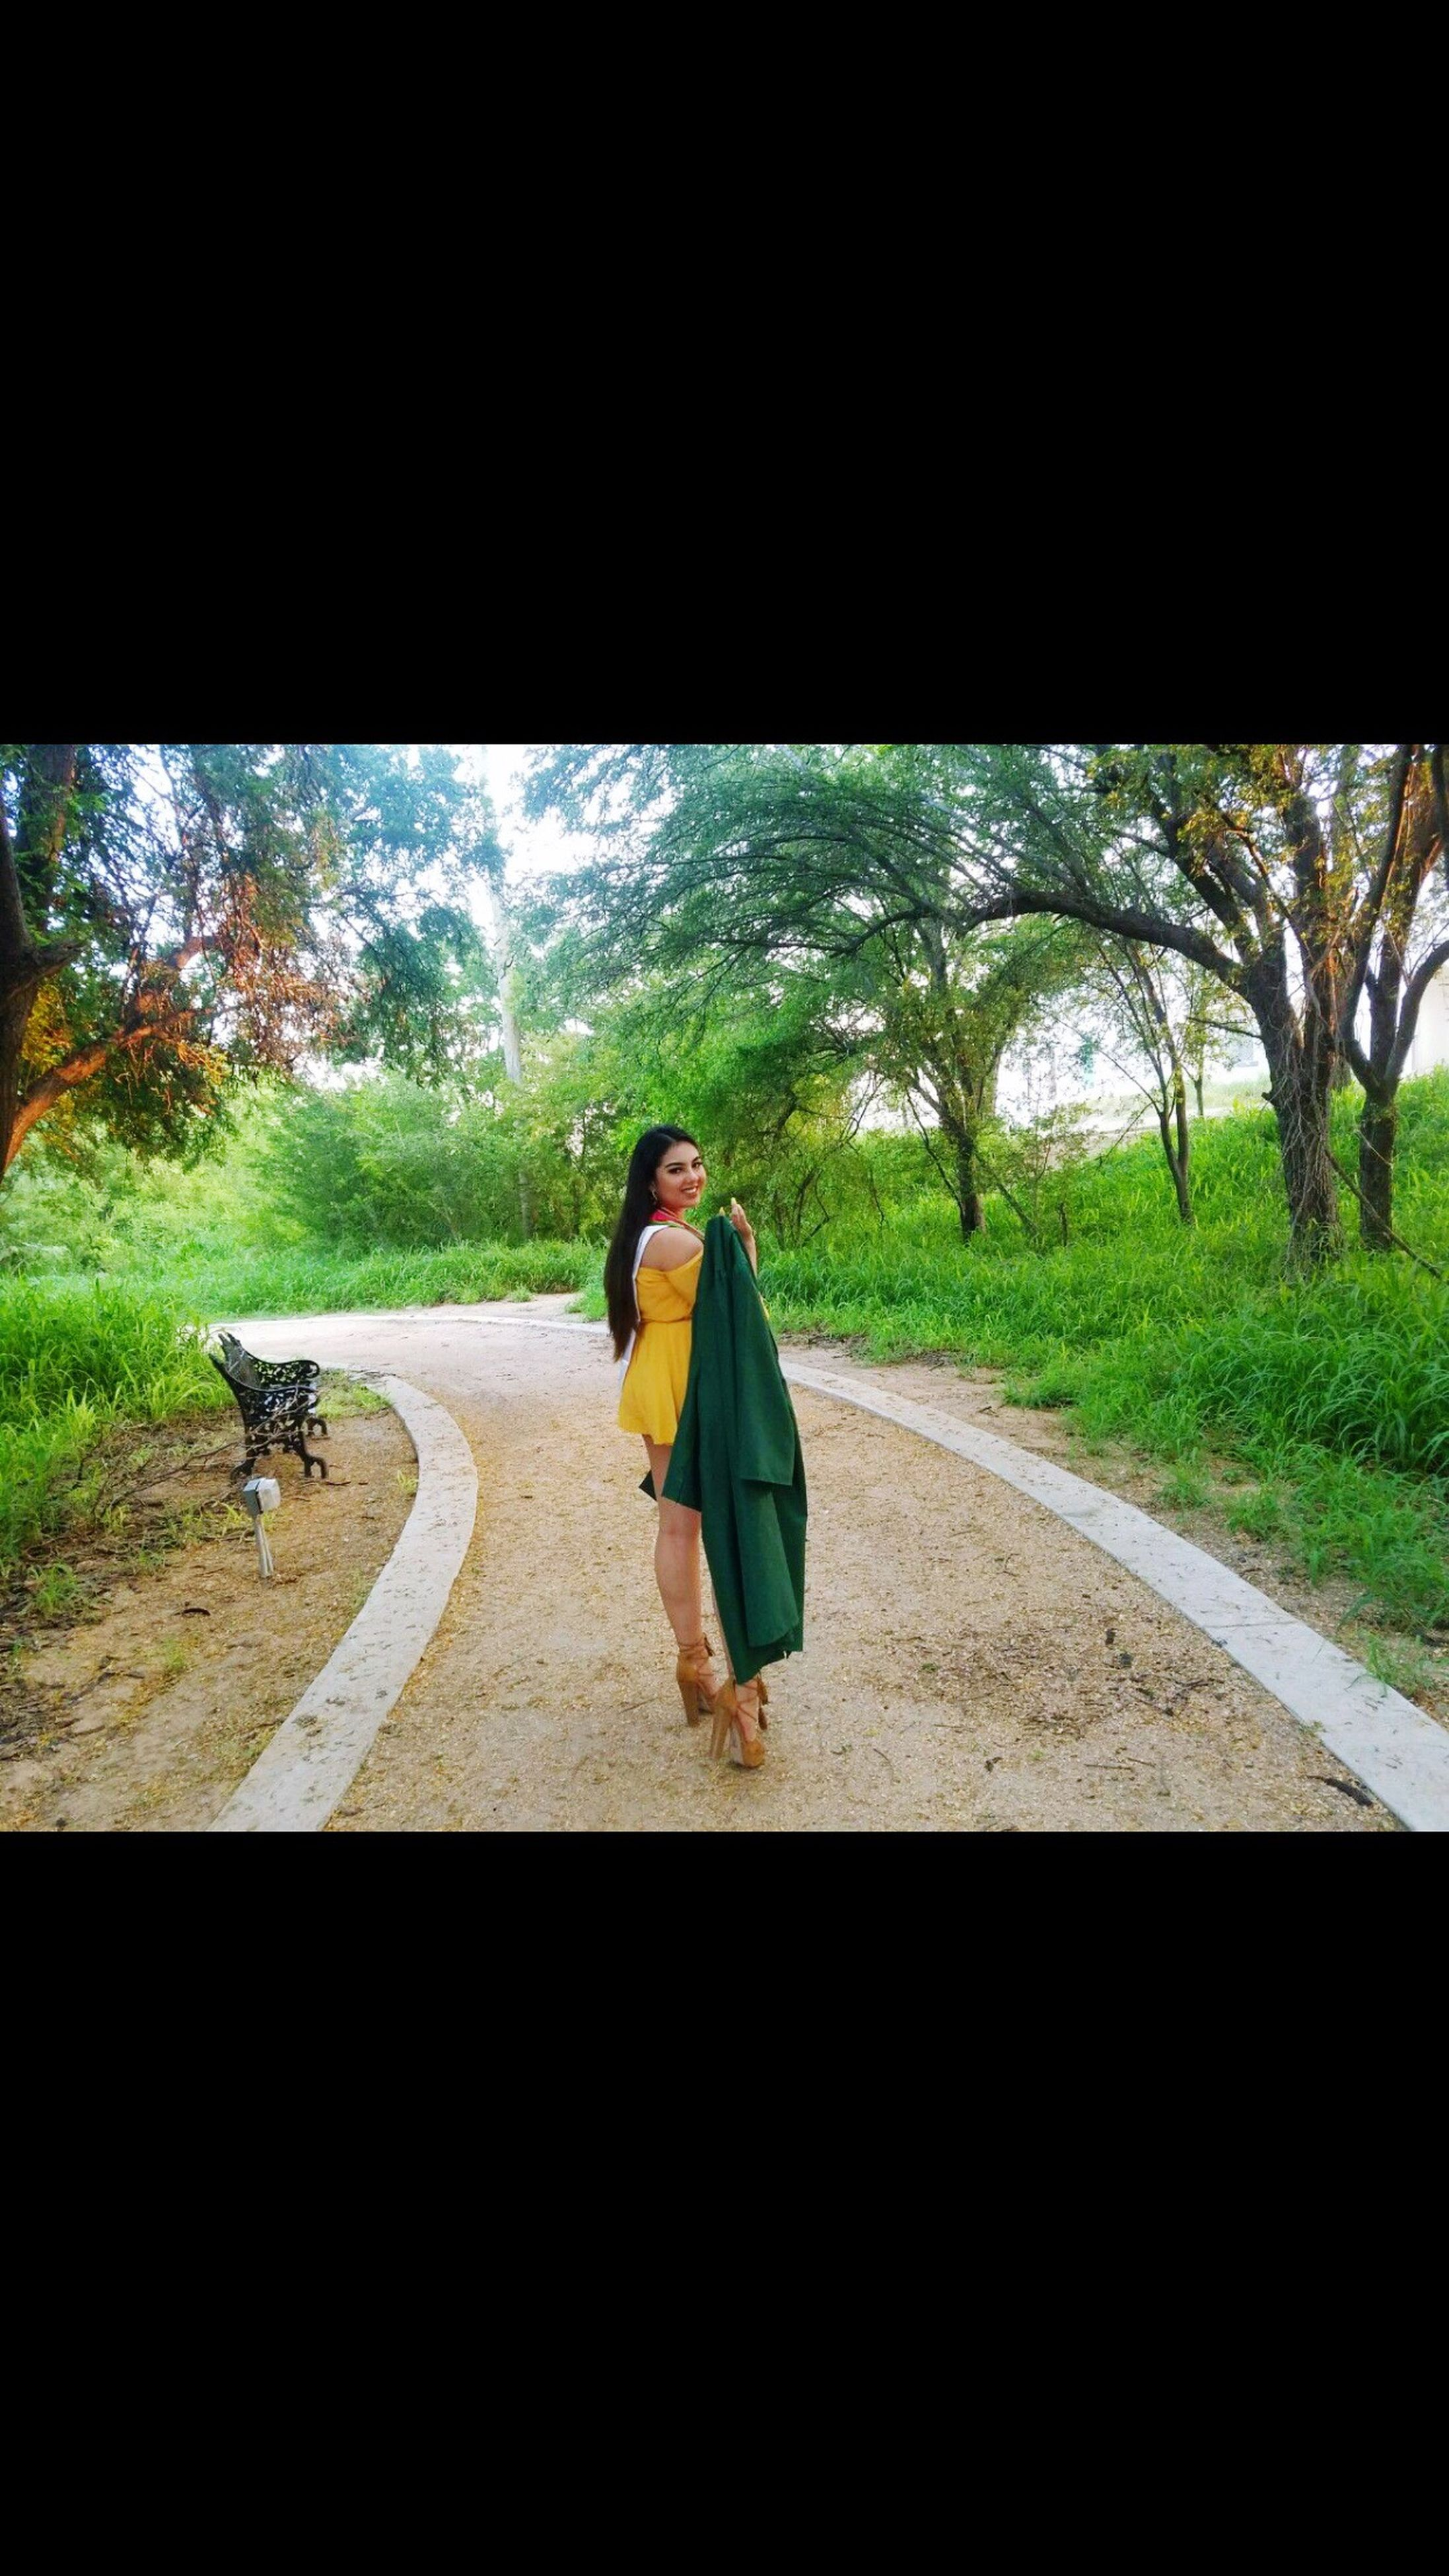 road, transportation, walking, full length, one person, rear view, tree, day, the way forward, adult, one animal, young adult, real people, outdoors, one woman only, women, only women, adults only, people, one young woman only, young women, sky, mammal